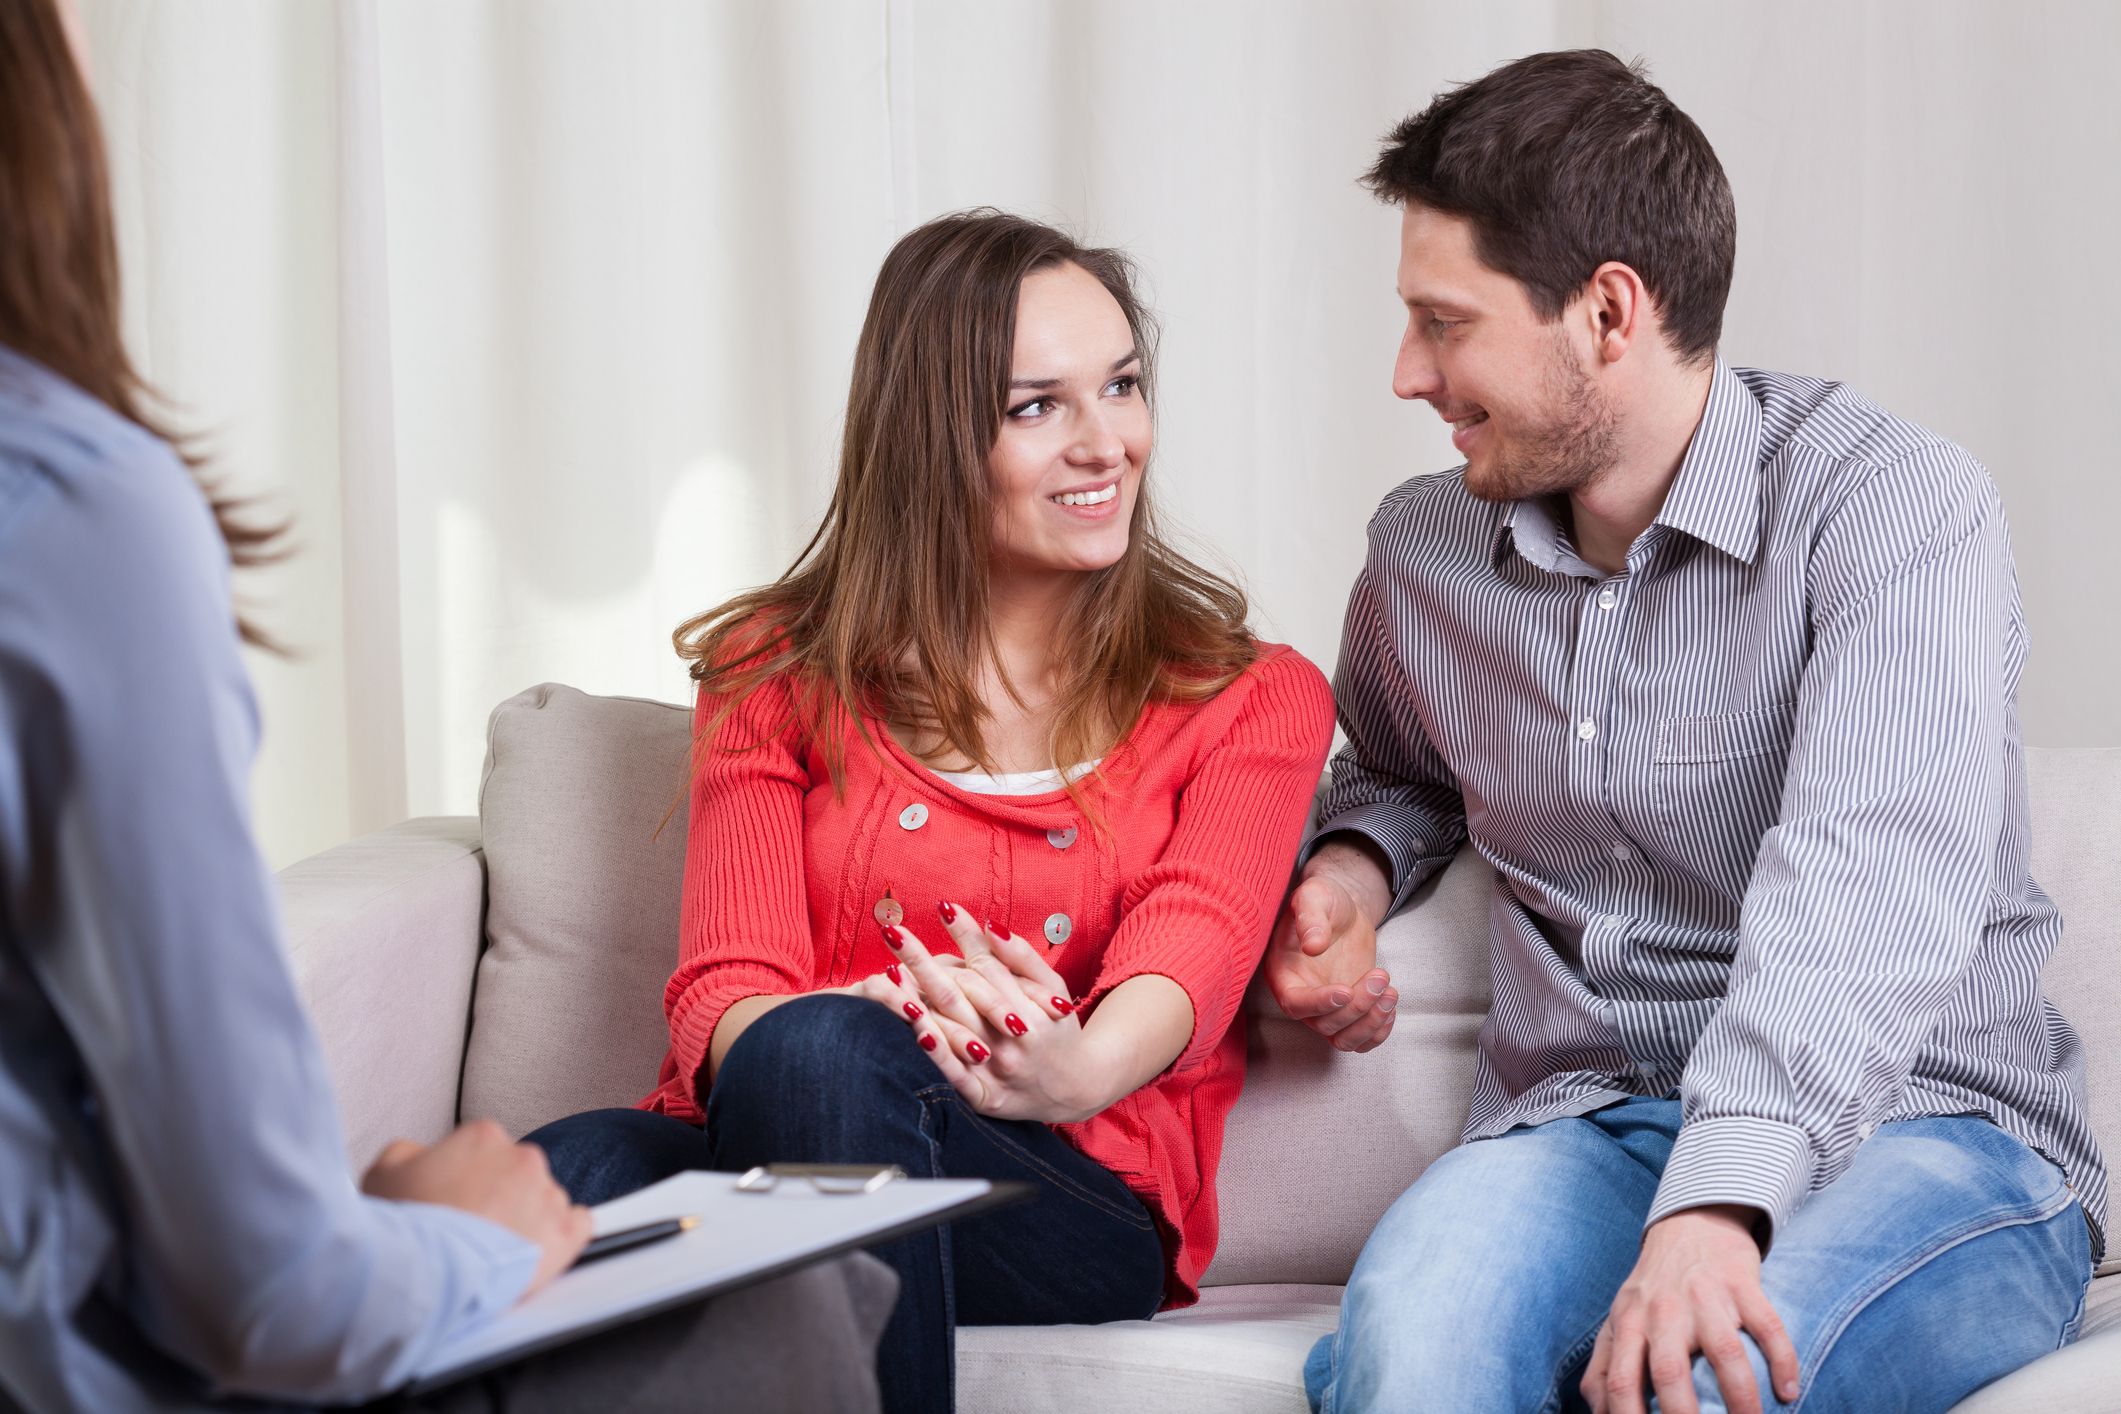 We provide SF Bay, East Bay & North Bay Couples & Marriage Counseling and Sex Therapy with highly skilled and specialized psychologists, psychotherapists, relationship coaches and clinical sexologists.